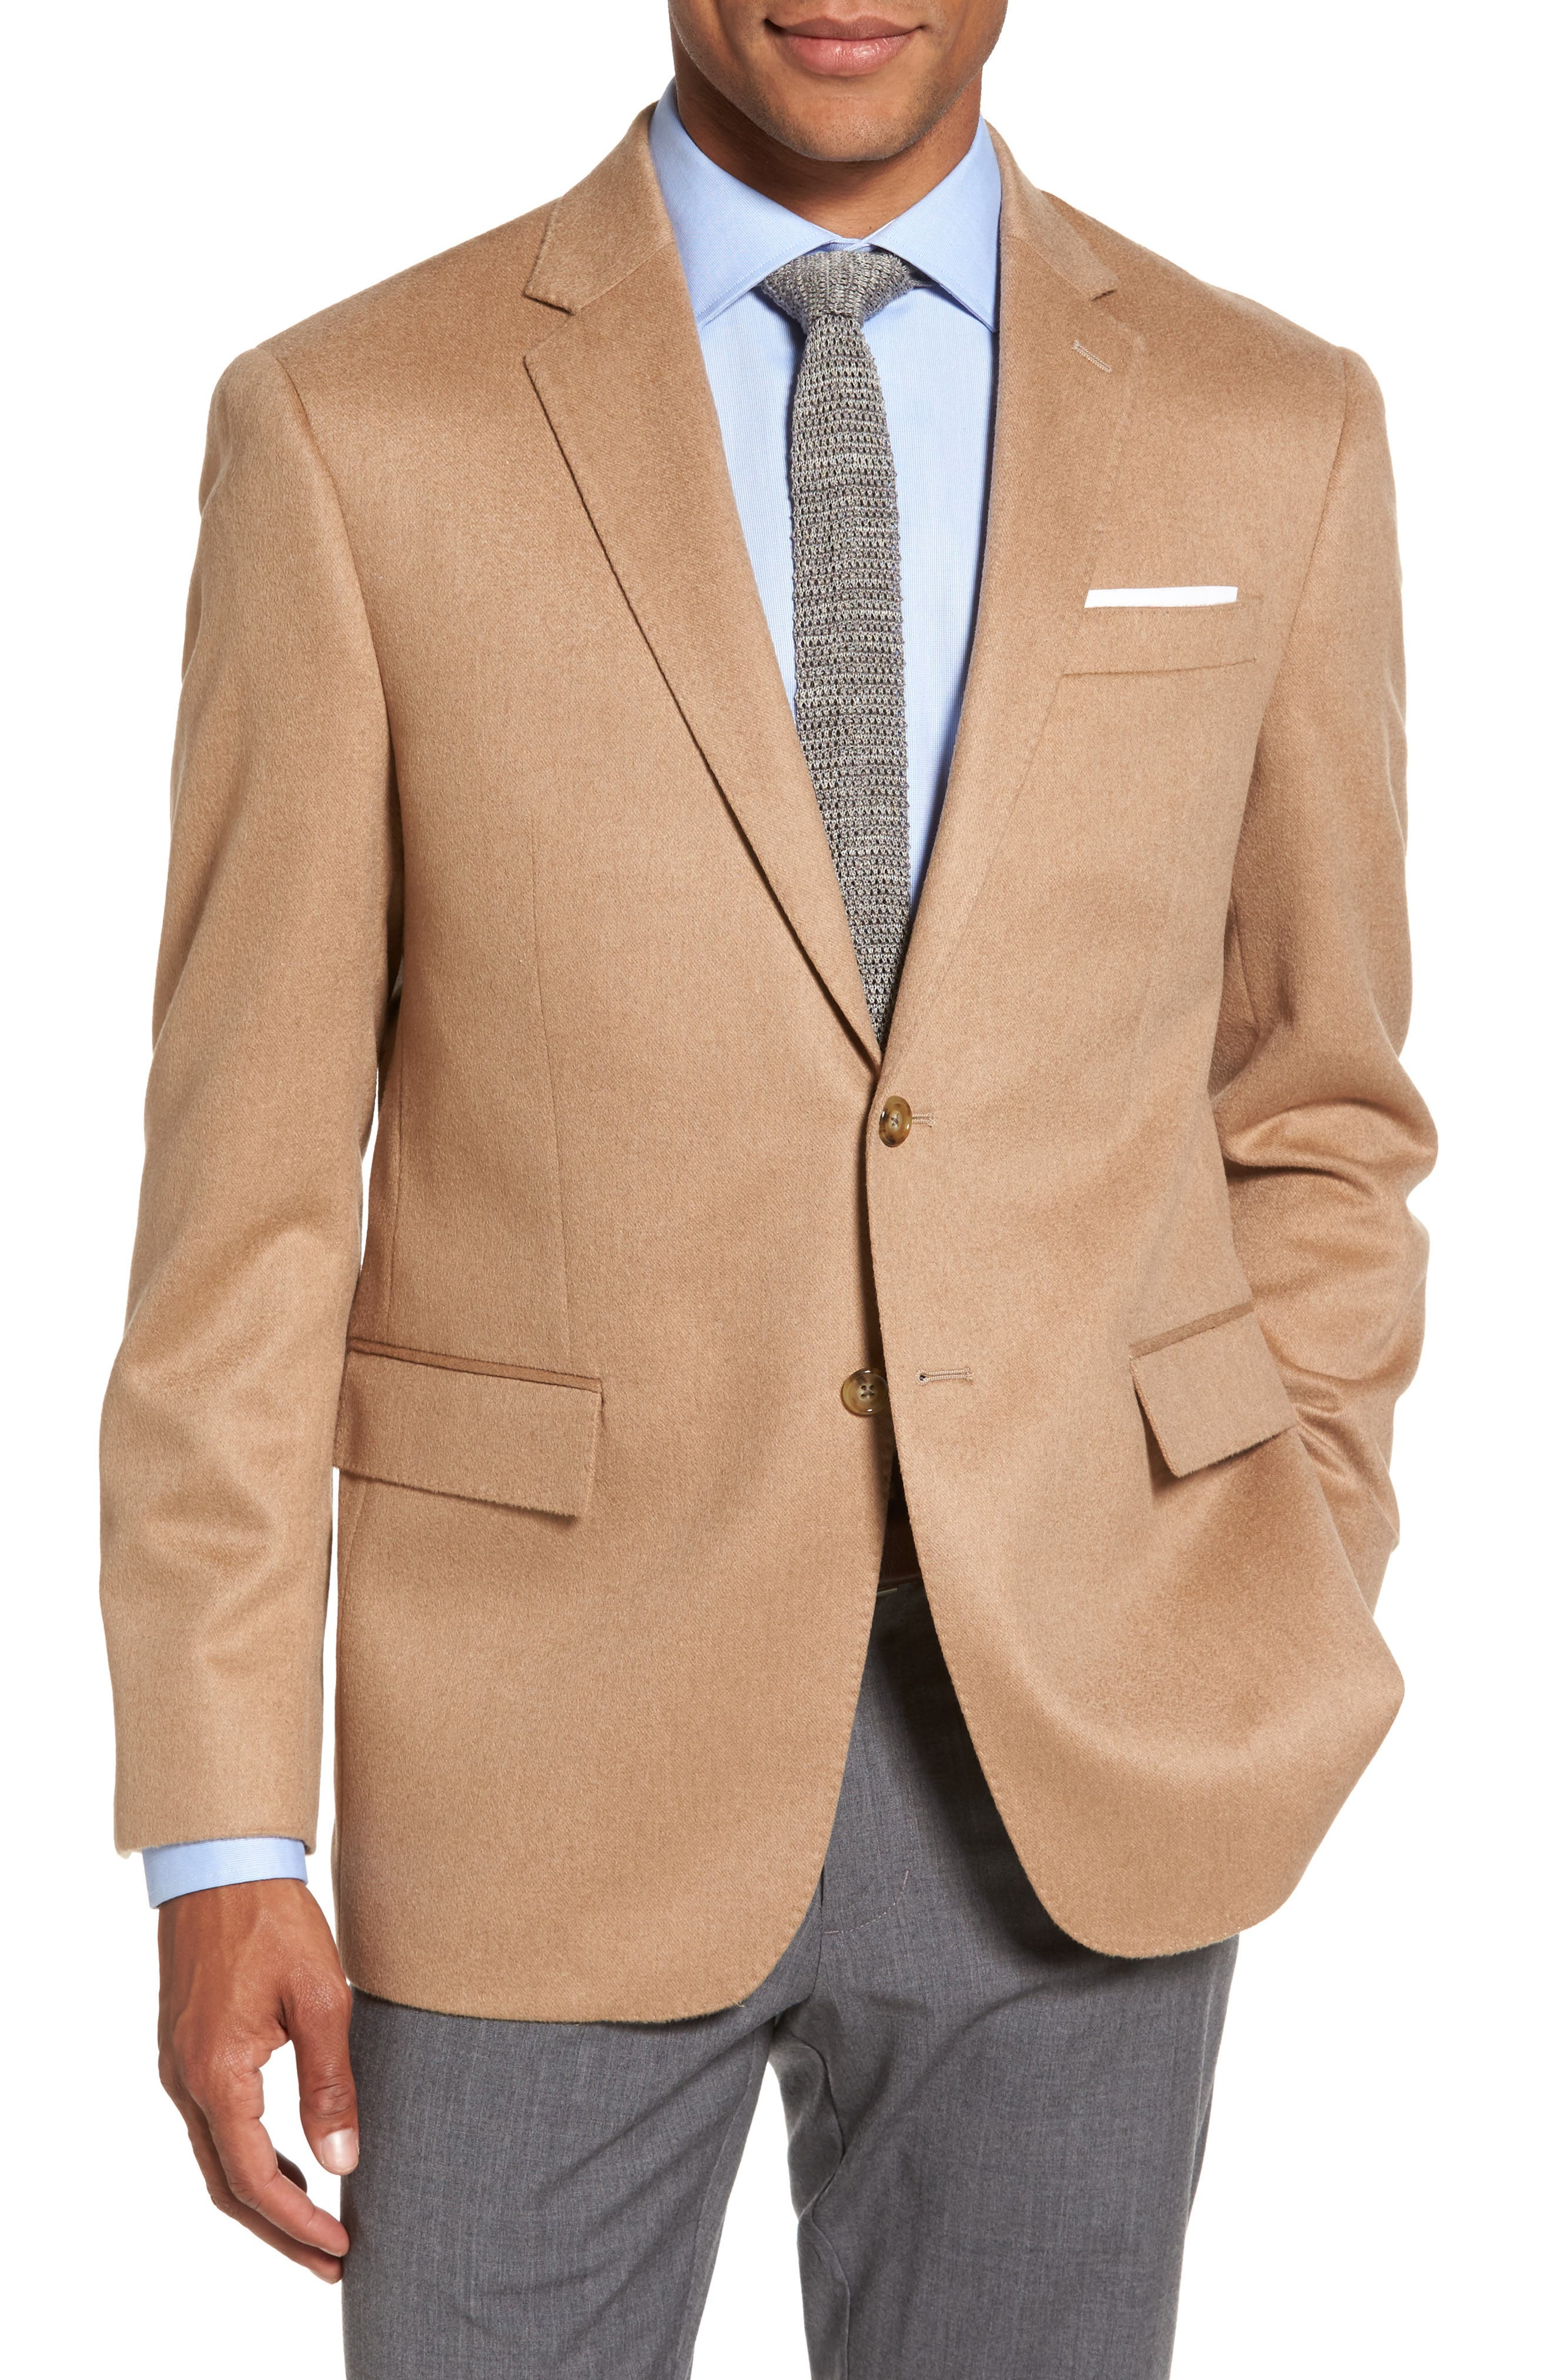 Main Image - Todd Snyder White Label Trim Fit Camel Hair Blazer